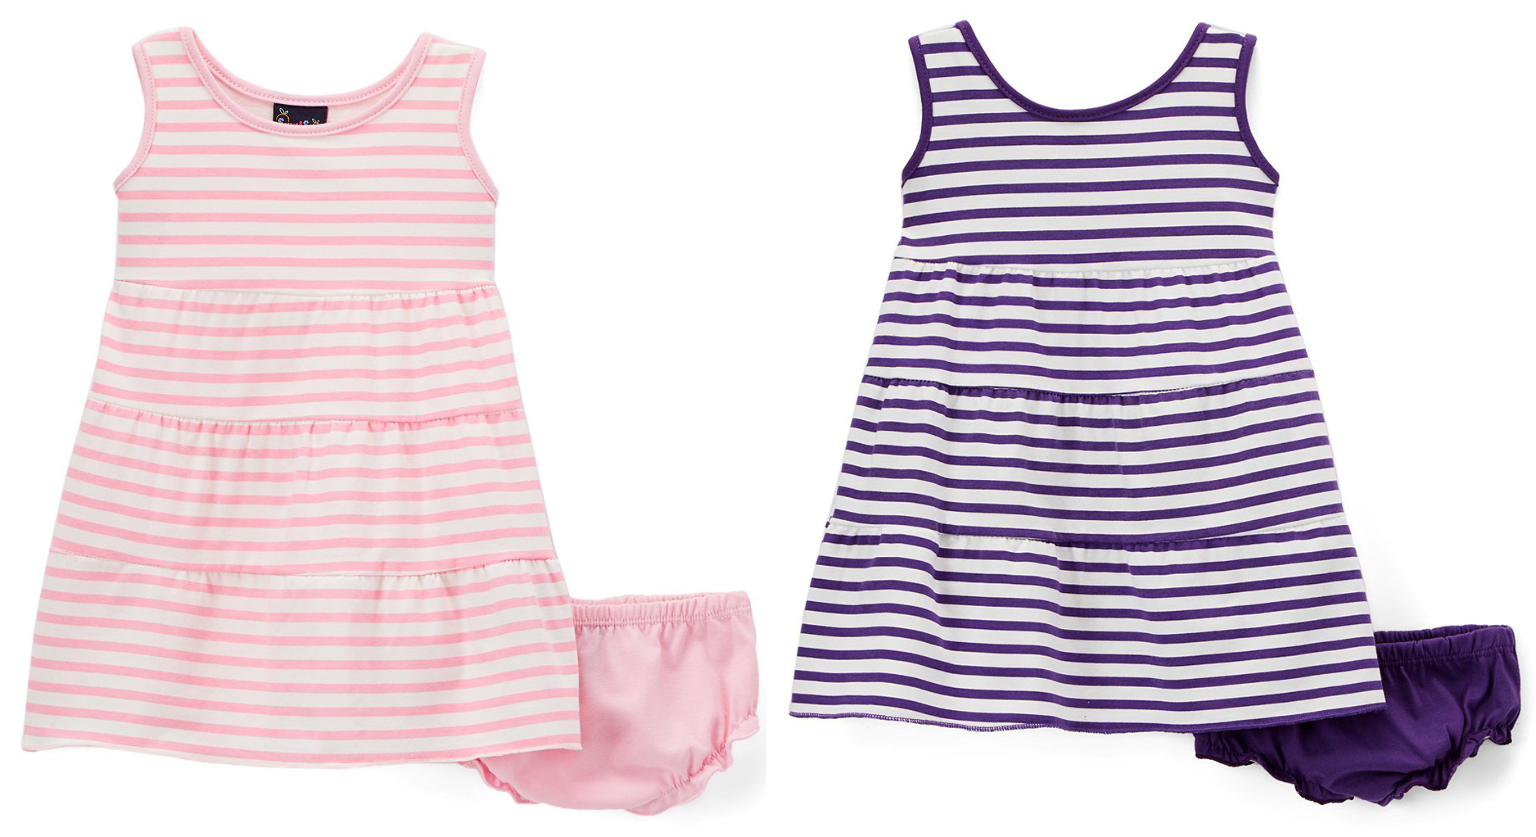 3740a92e2927 Wholesale Baby Girl s Thin Stripe Knit Dresses with Panty Set - Size ...